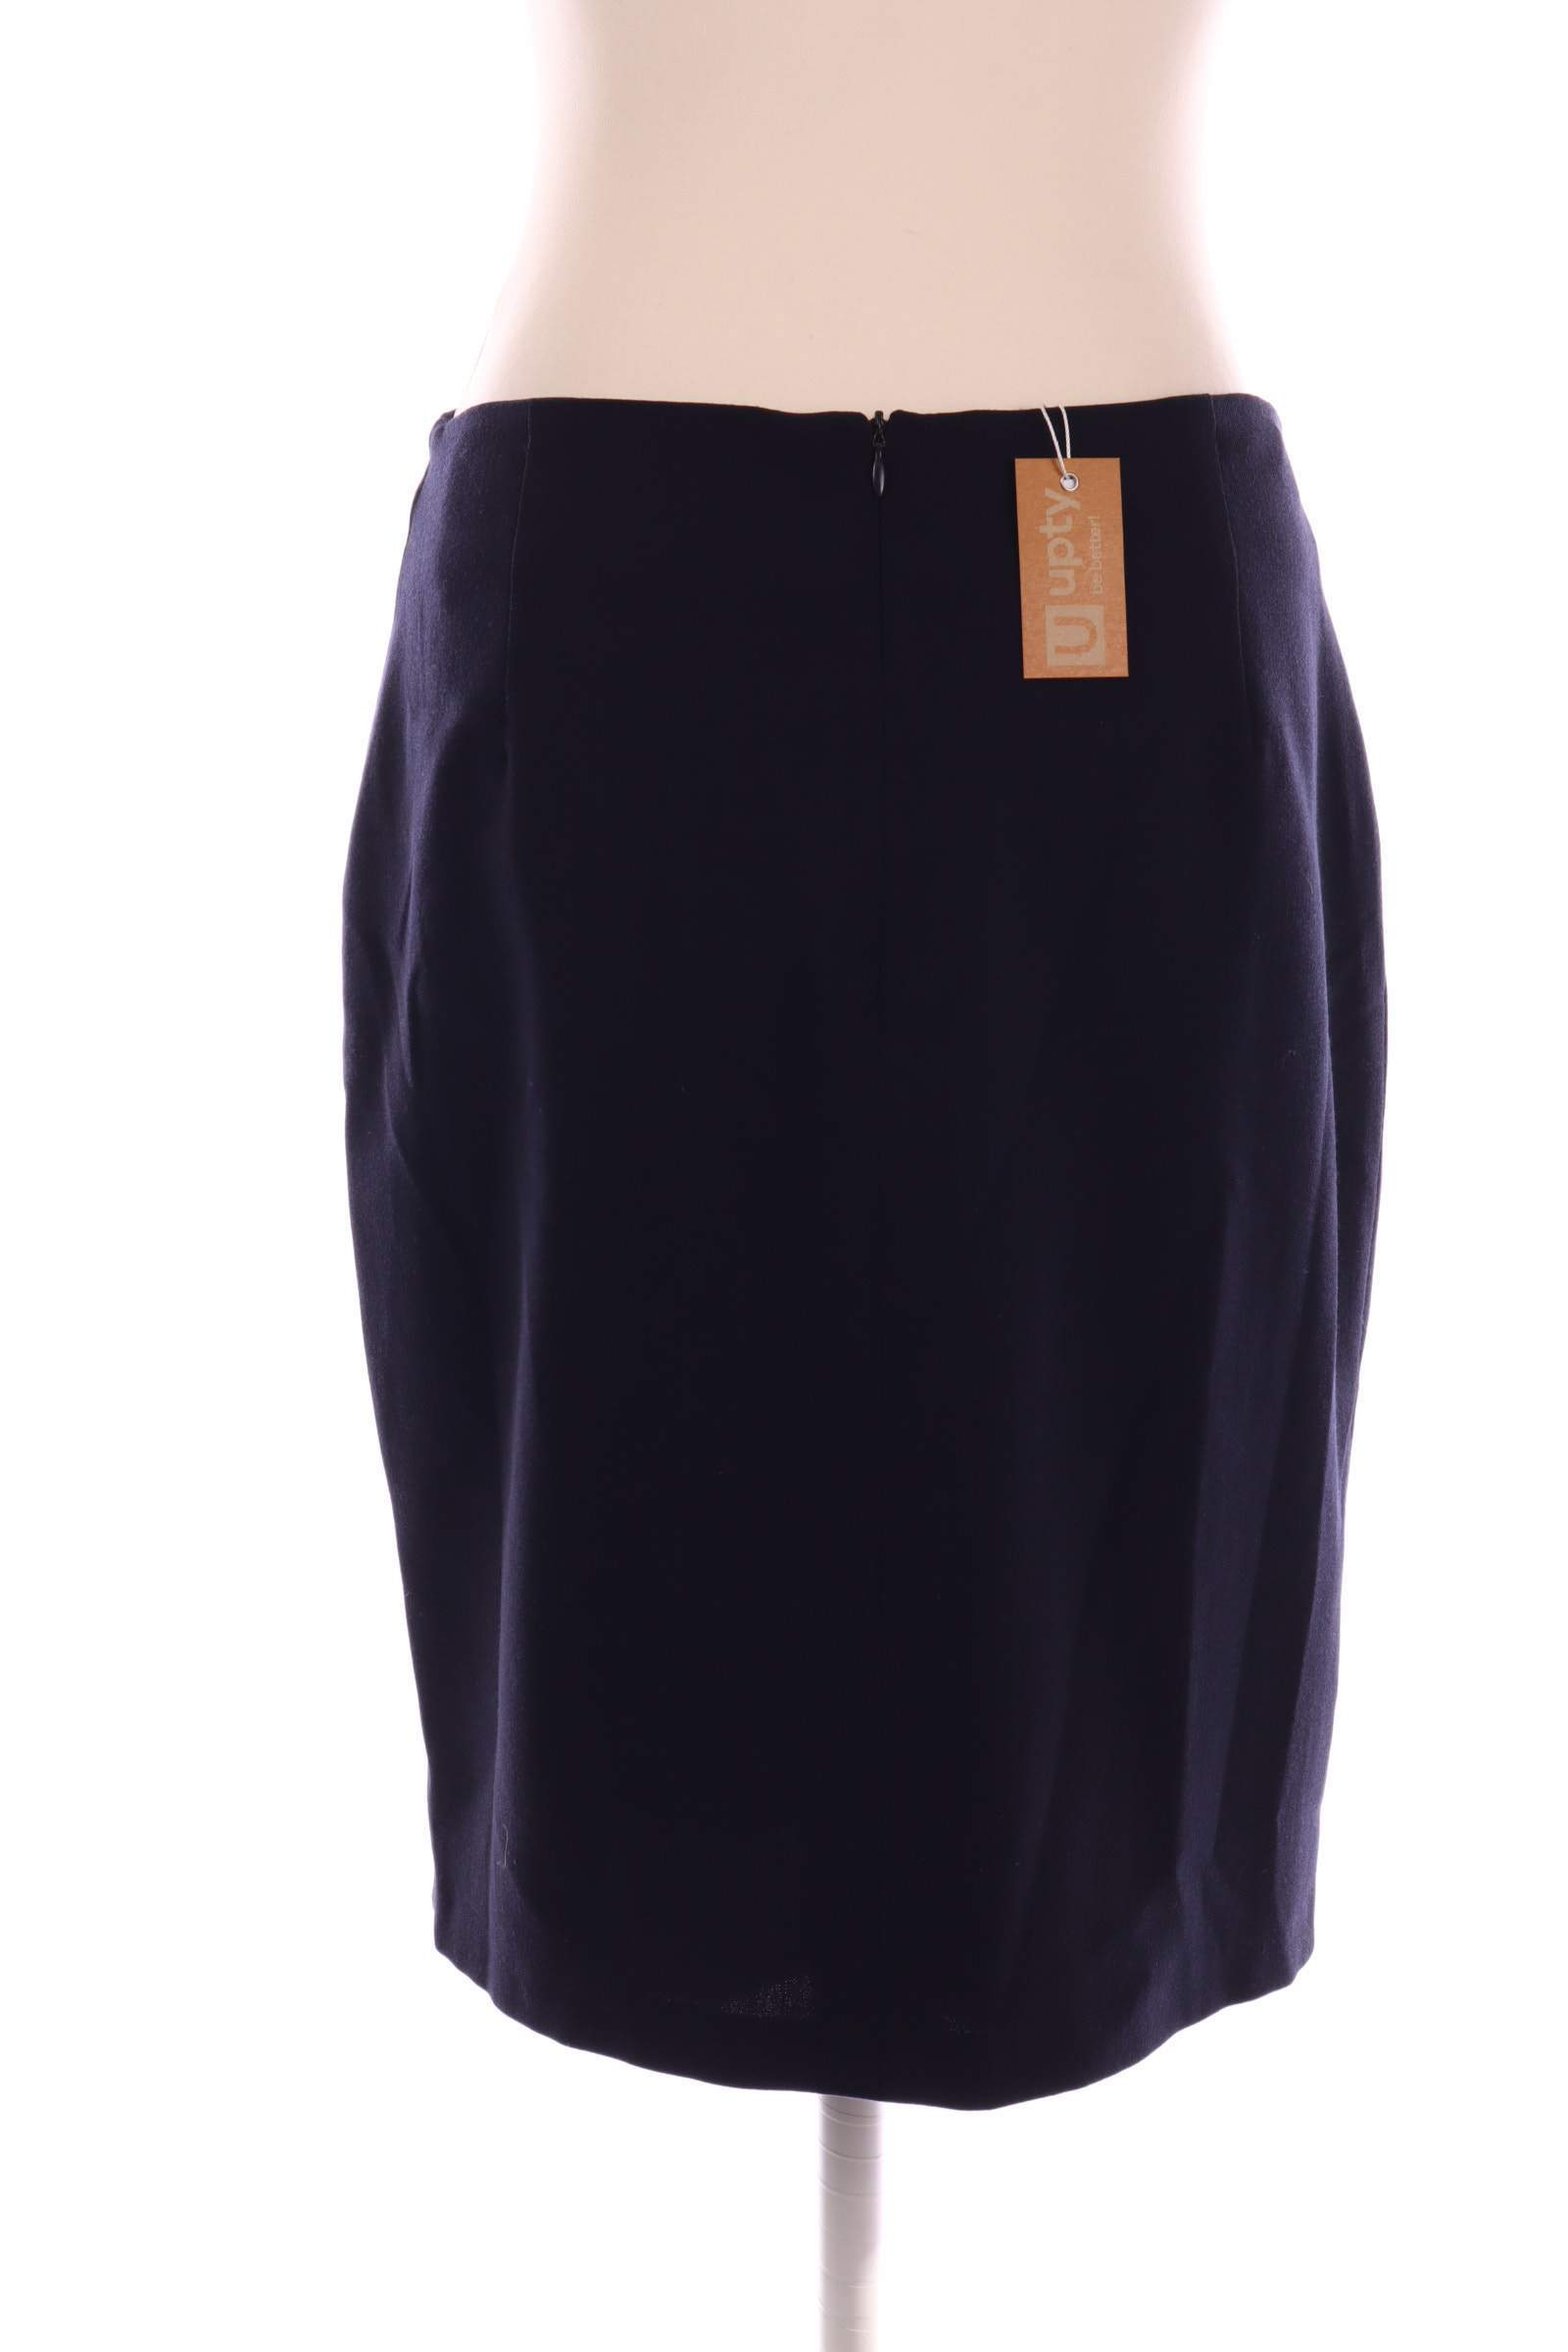 Hammerschmid Black Skirt - upty.store